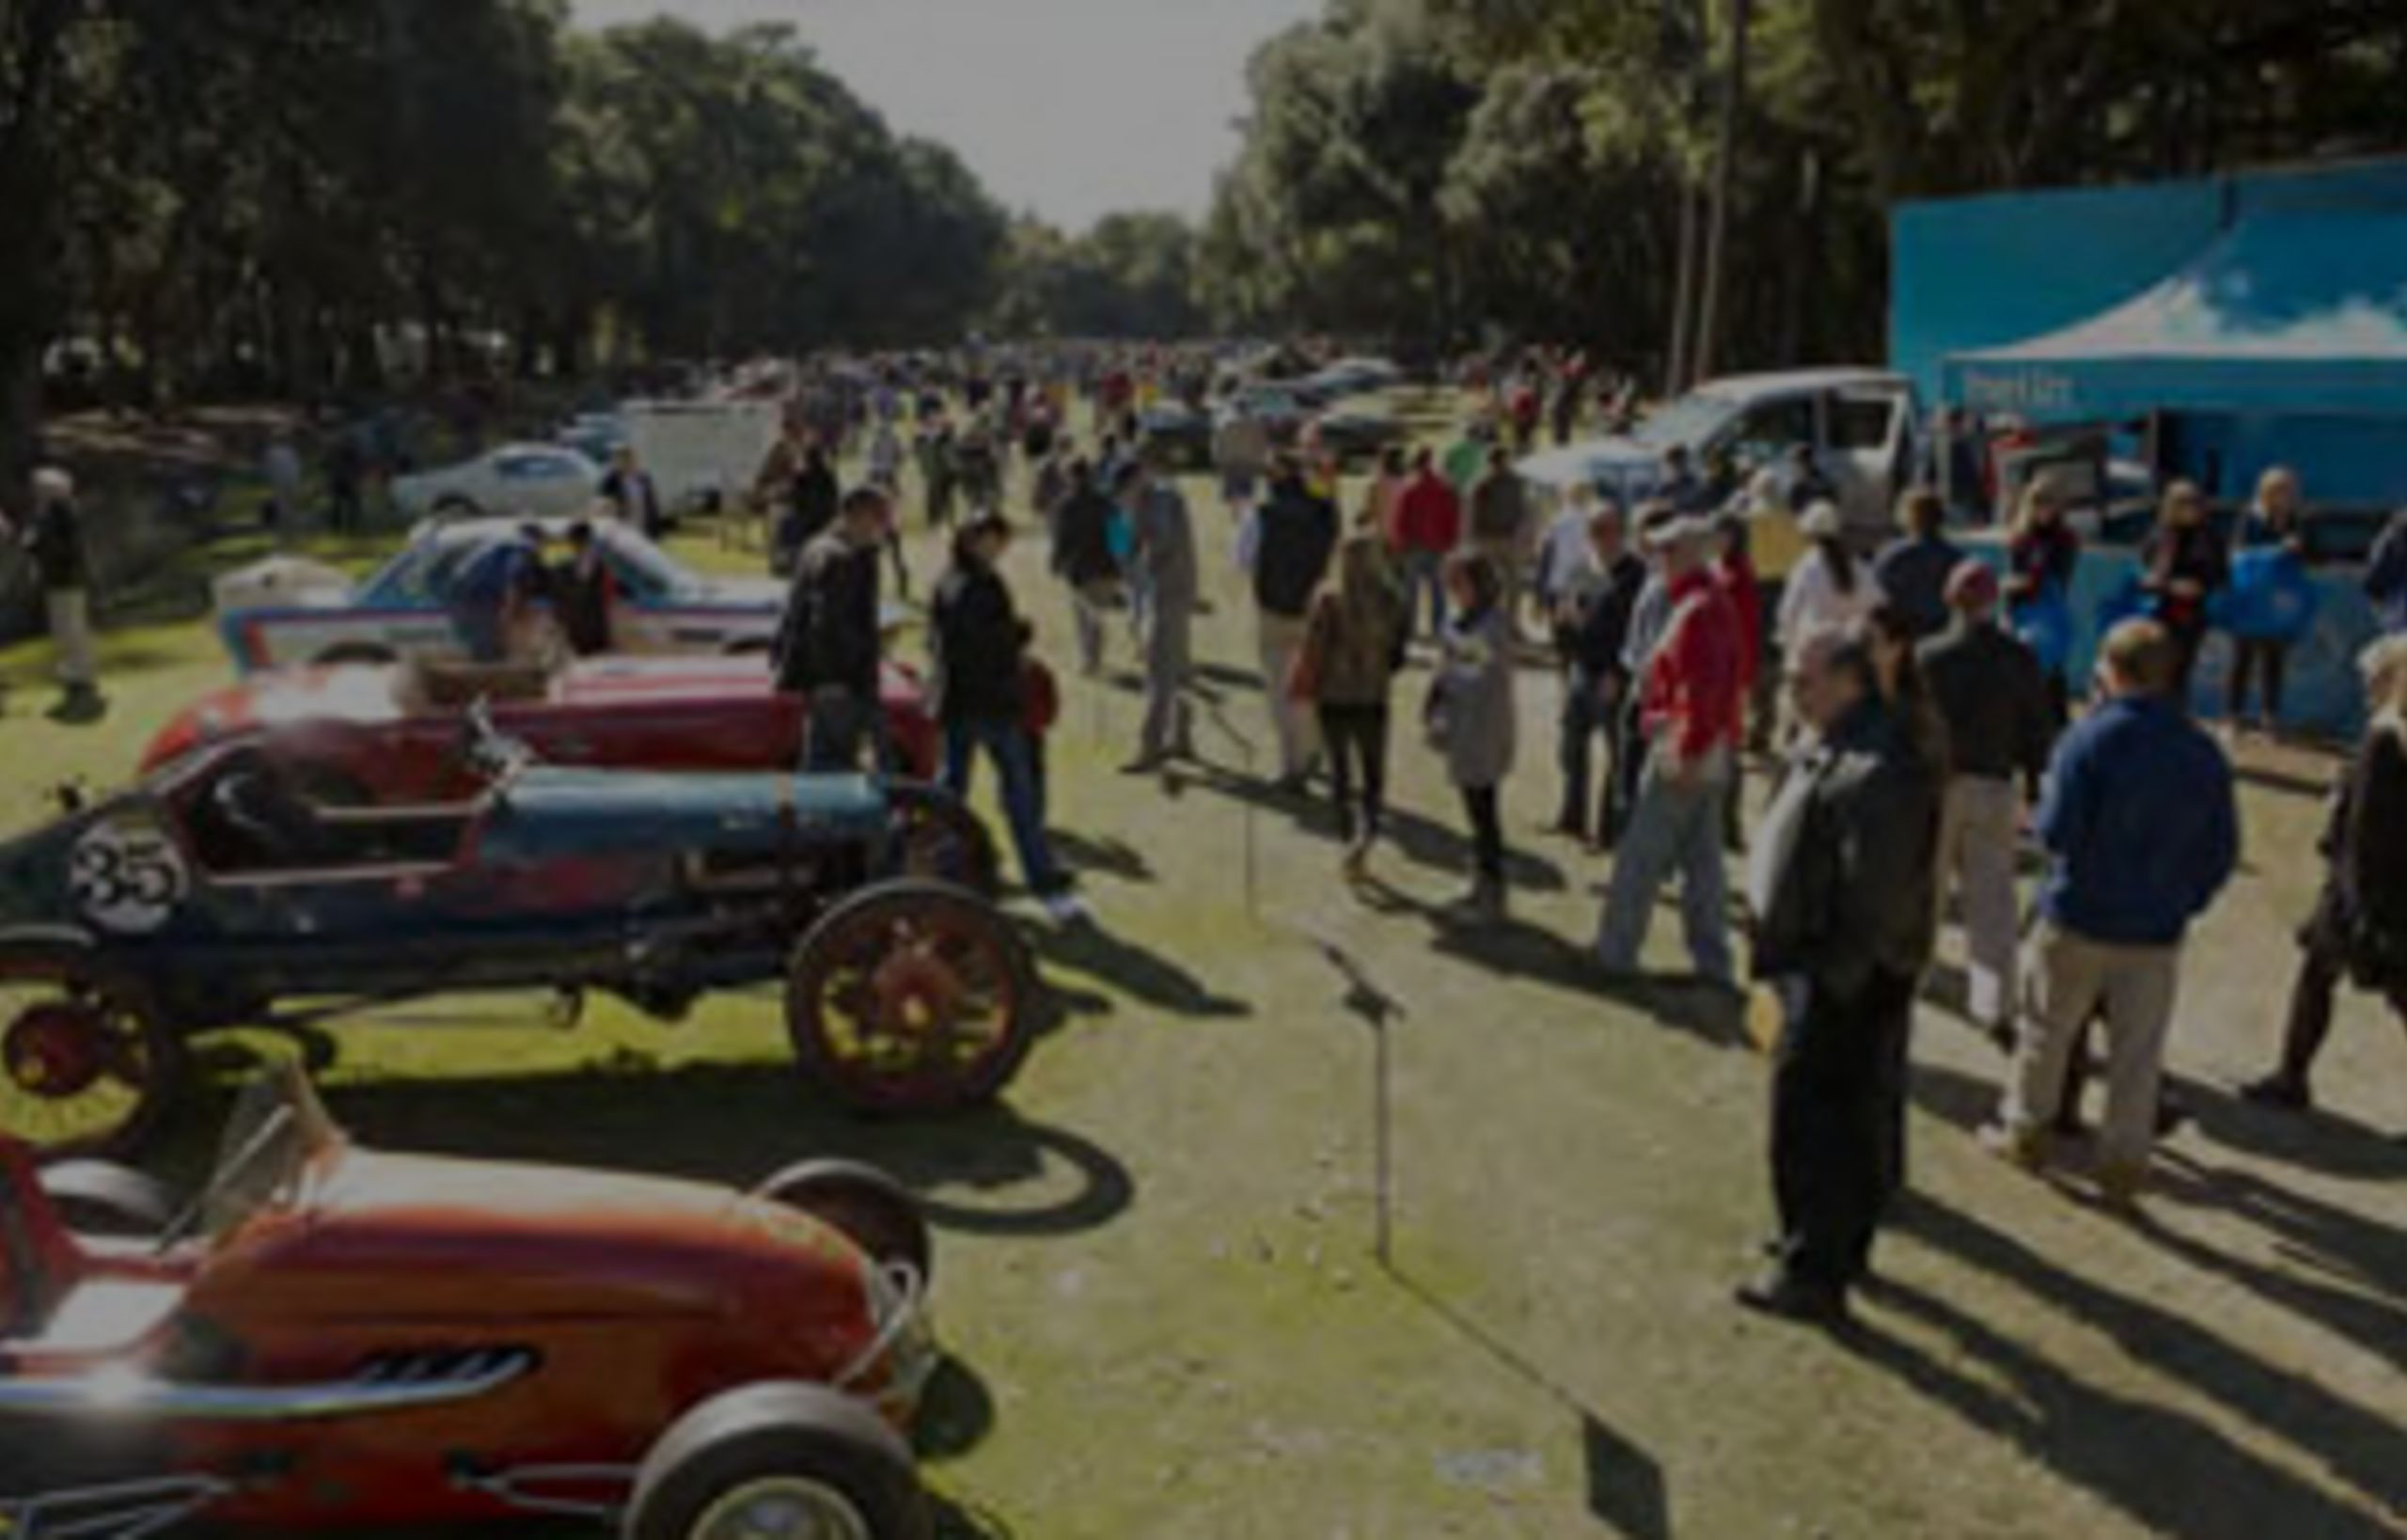 Hilton Head Island Motoring Festival and Concours d'Elegance